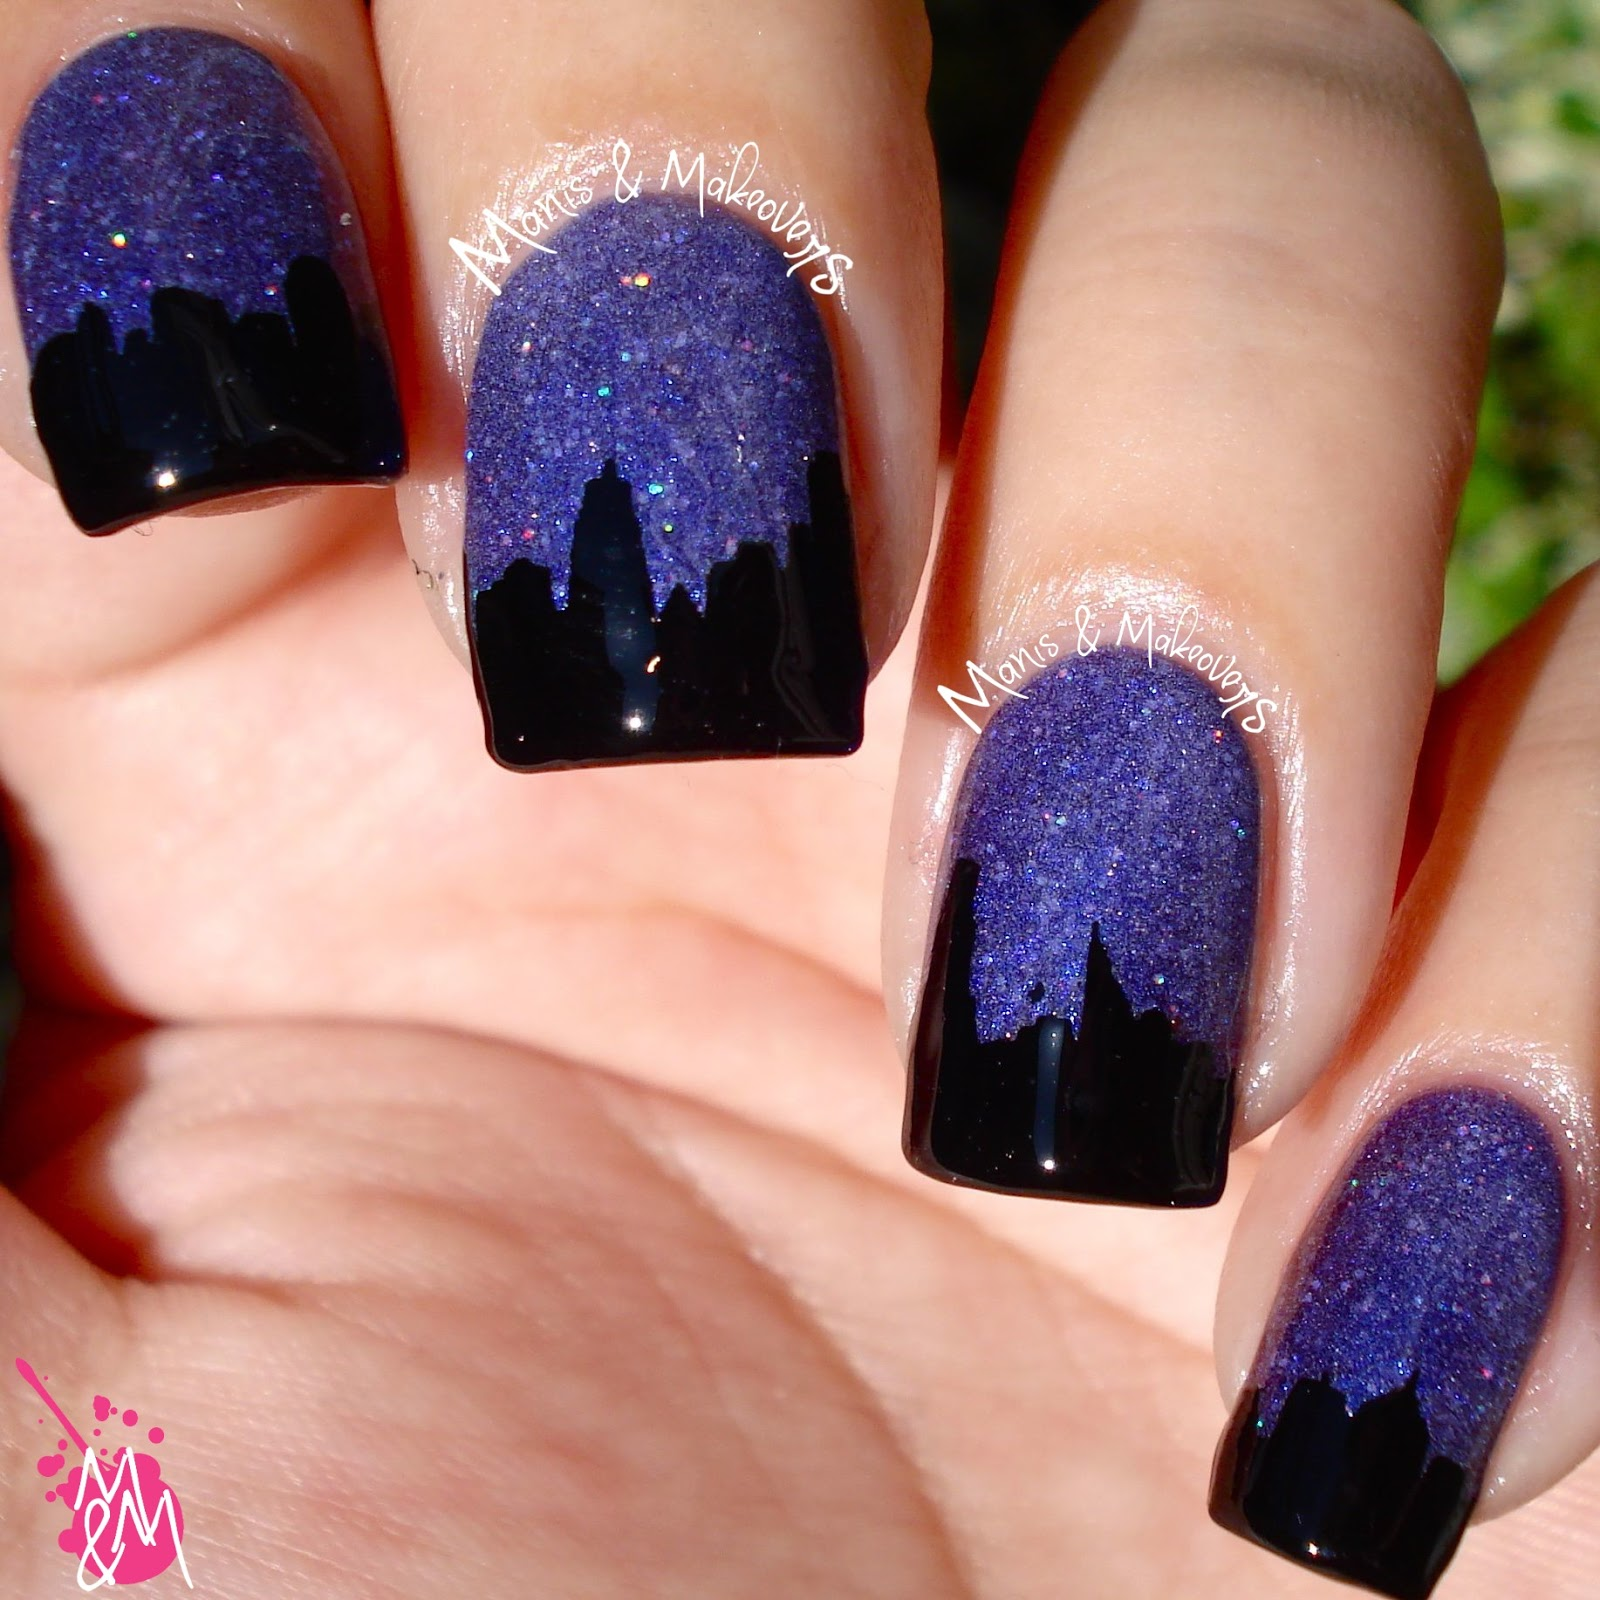 Manis & Makeovers: HPB Presents: City Night Sky